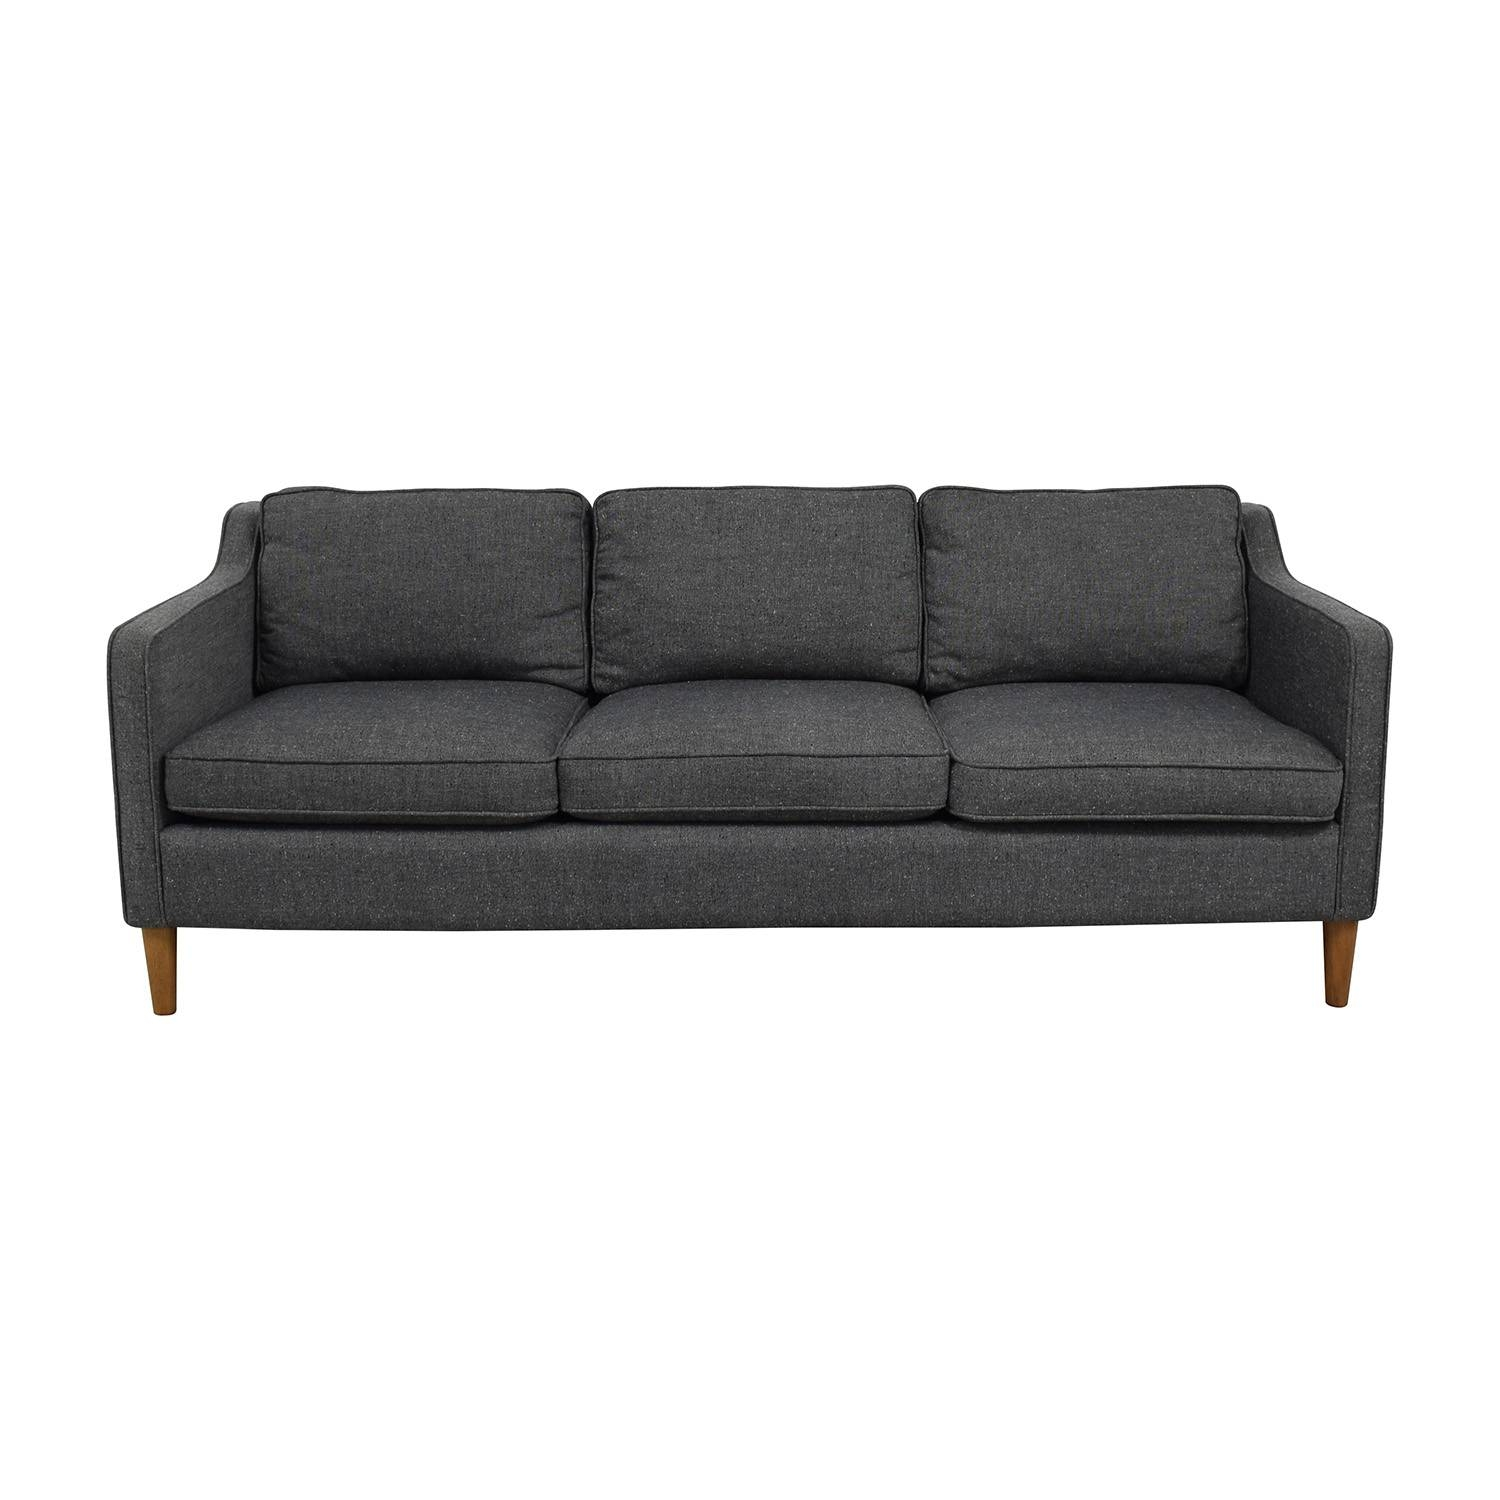 West Elm Henry Sleeper Sofa Reviews